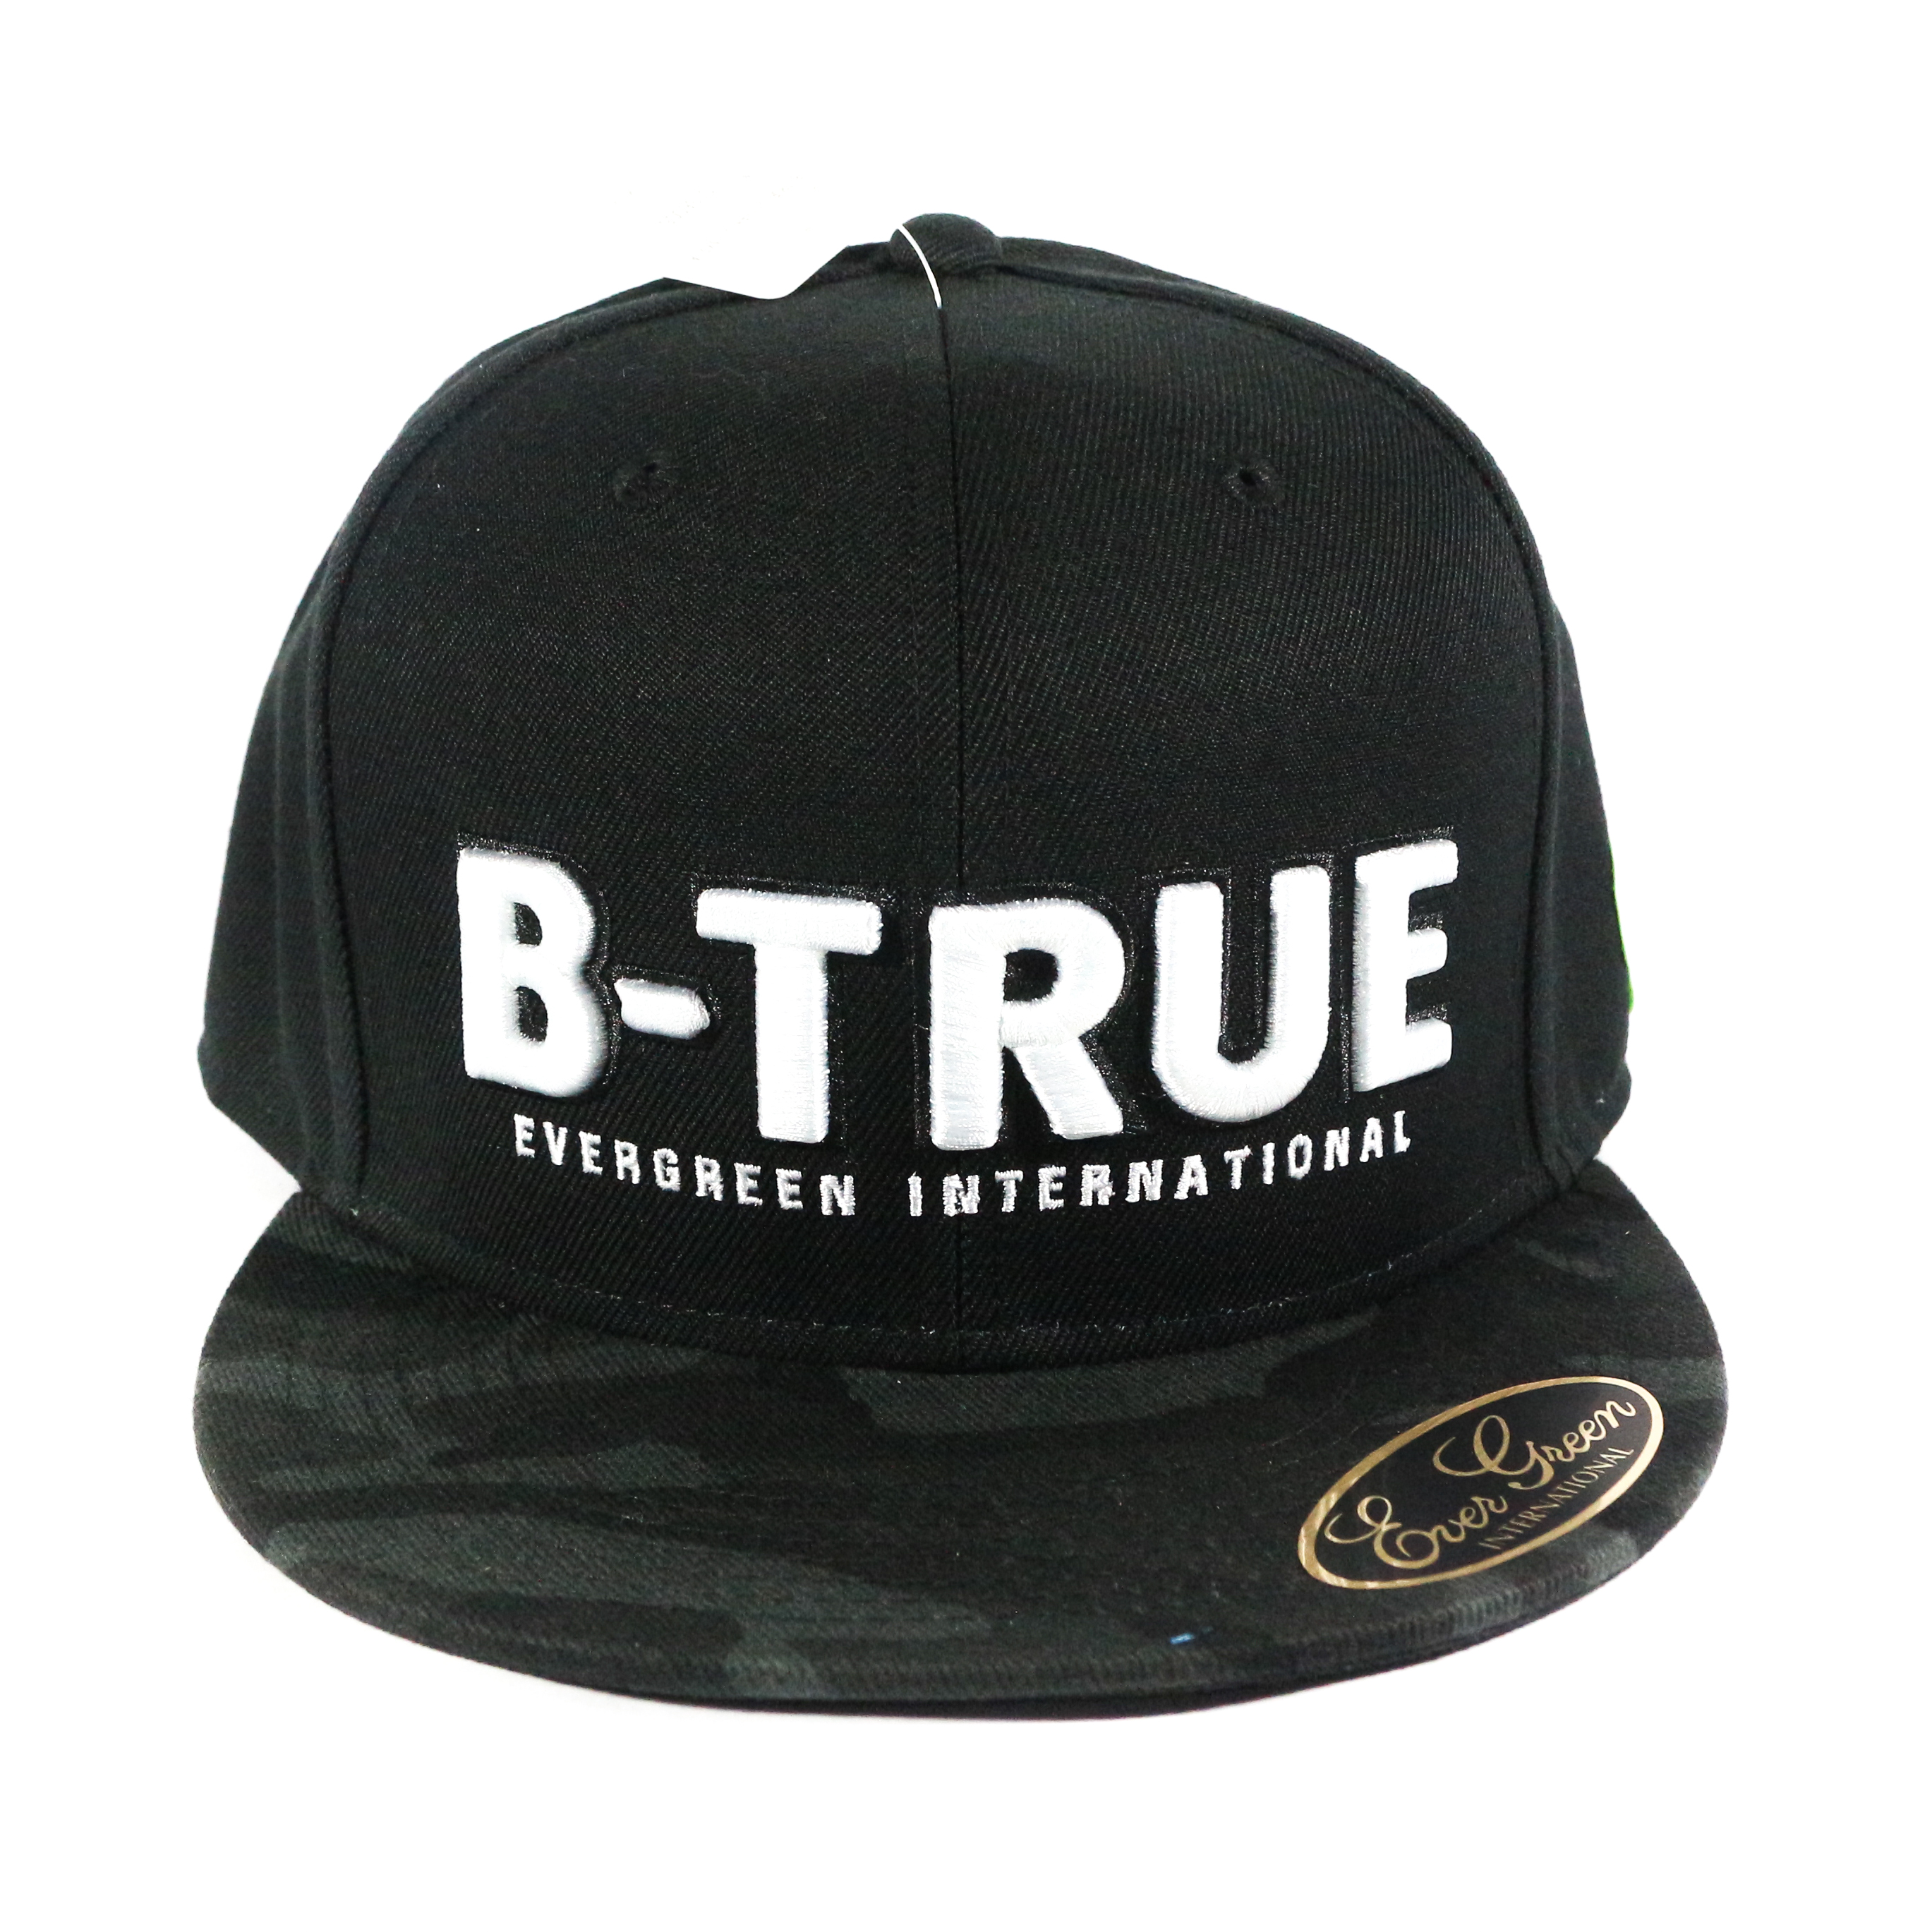 Evergreen Cap Flat Cap B-True Type A Japan Free Size Black Camou (9873)